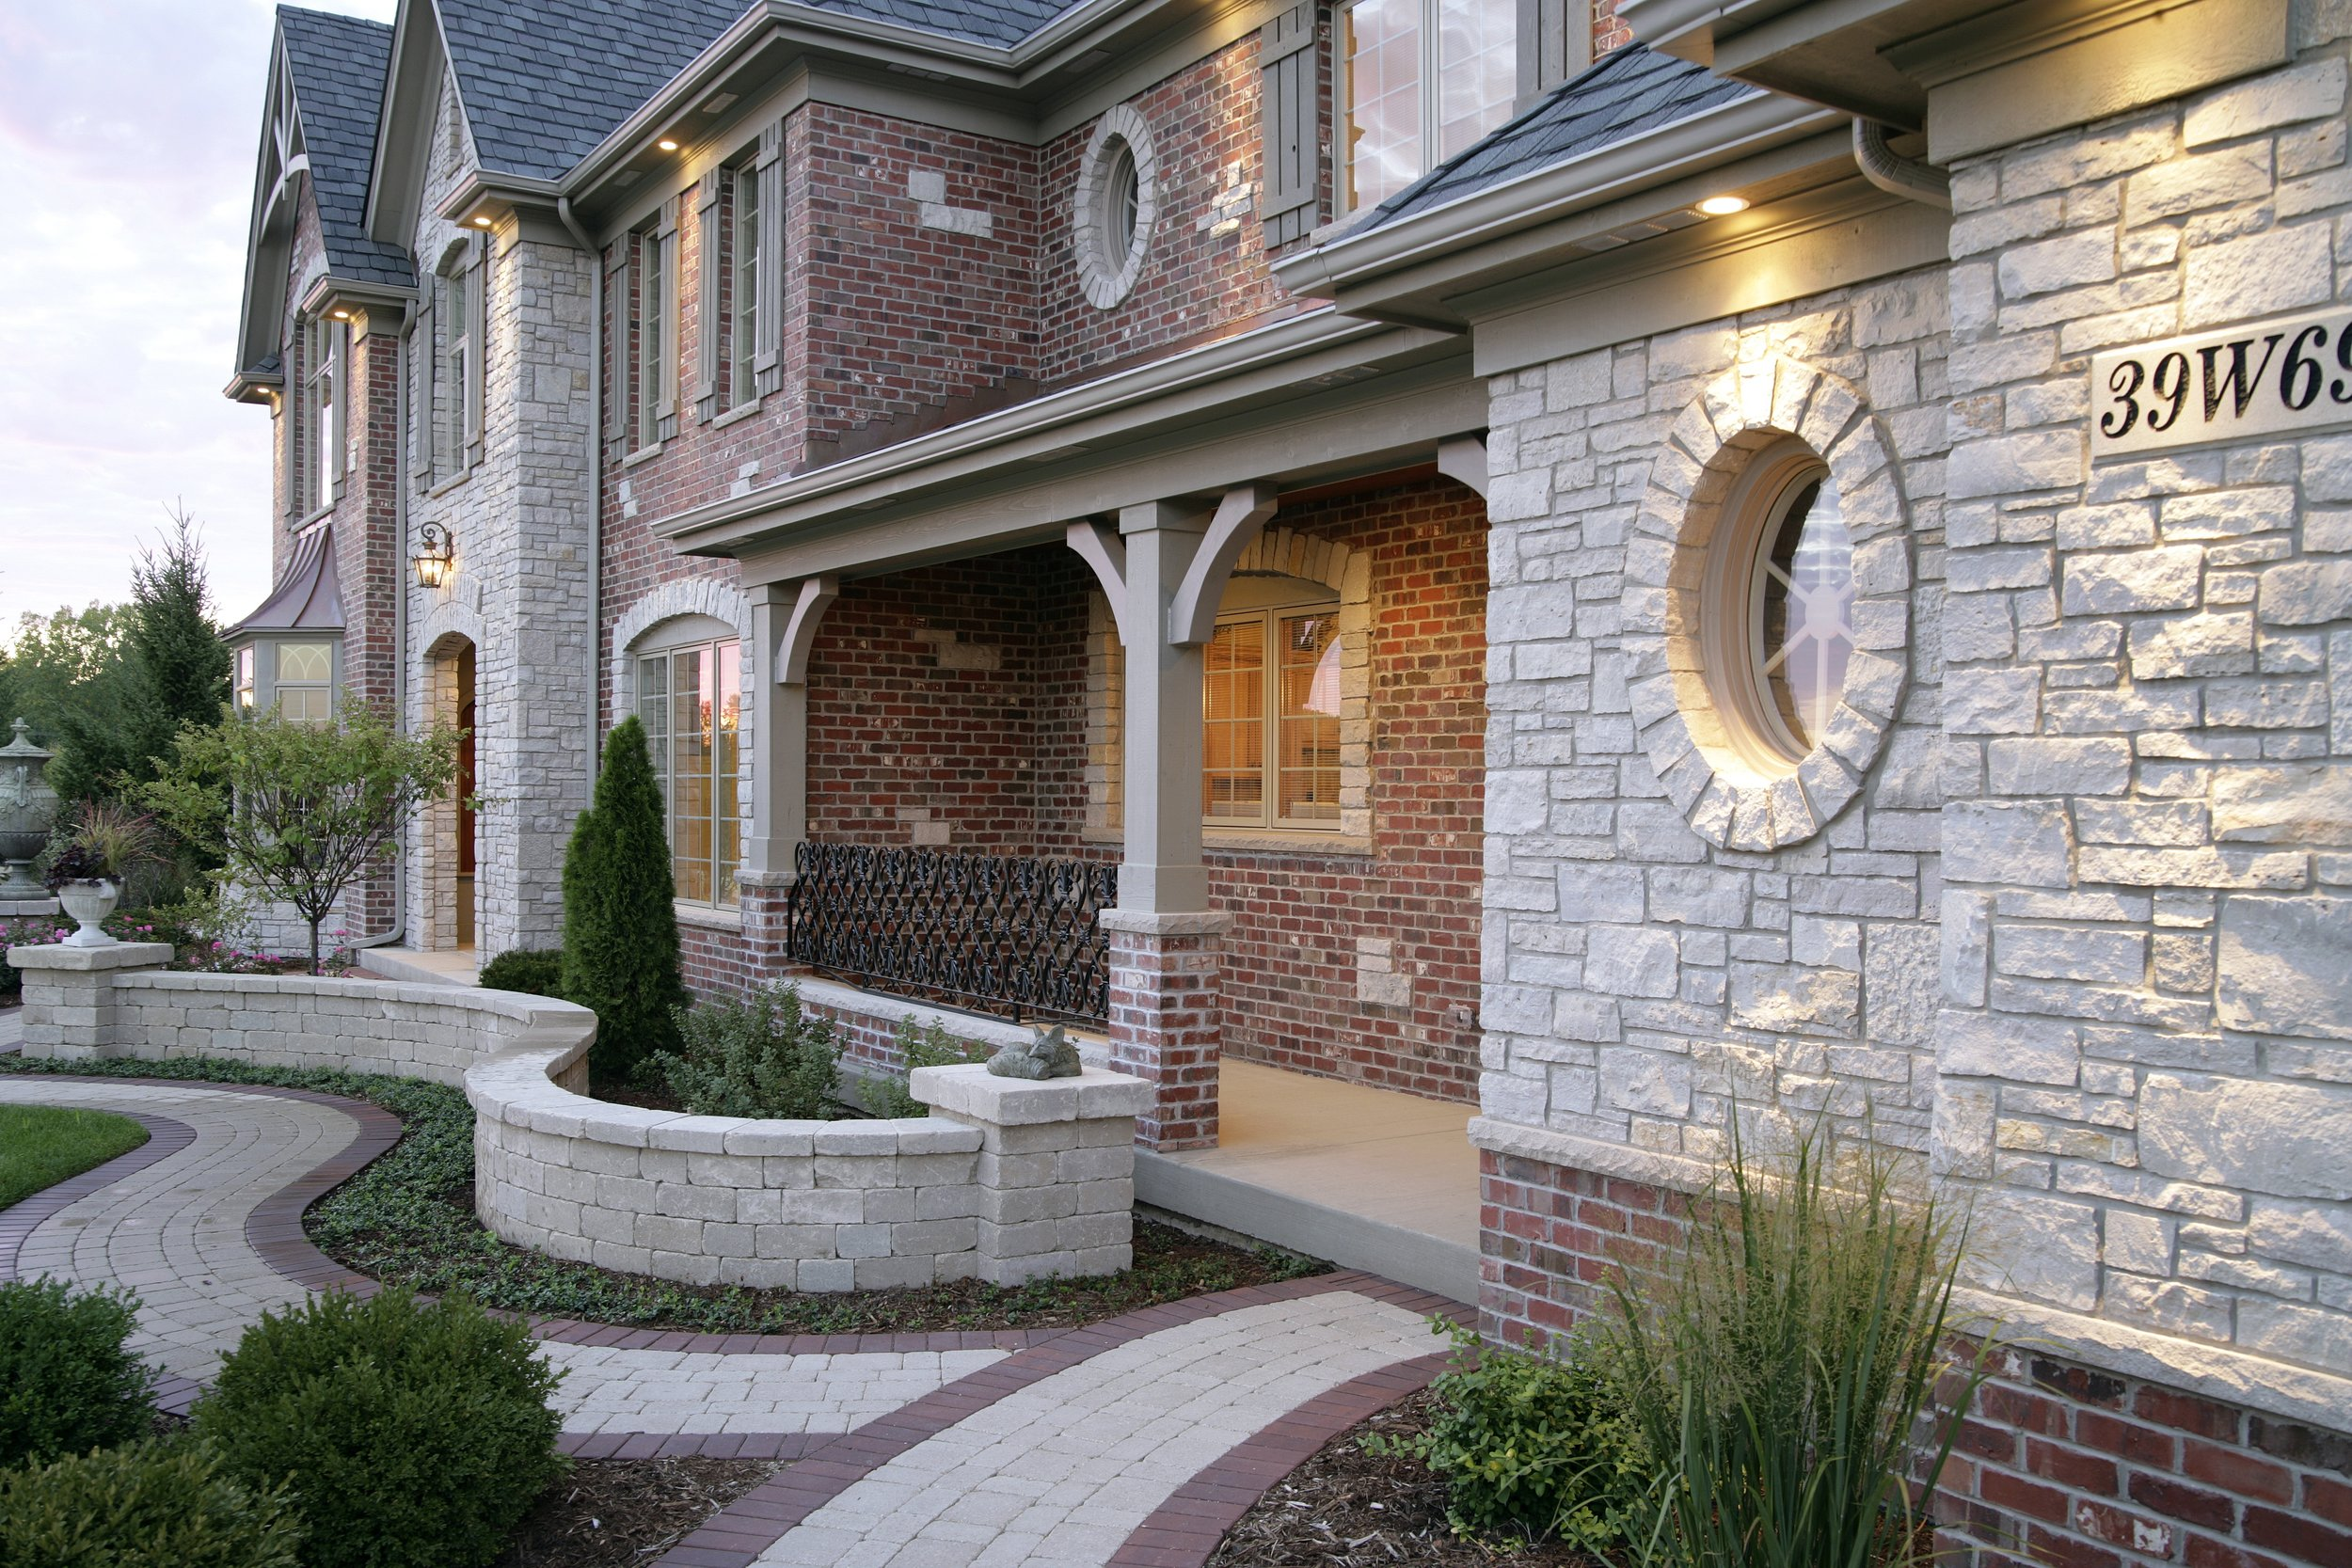 Prairie Lakes Custom Home by Southampton. St. Charles IL 60175. Brick and Stone Combination.